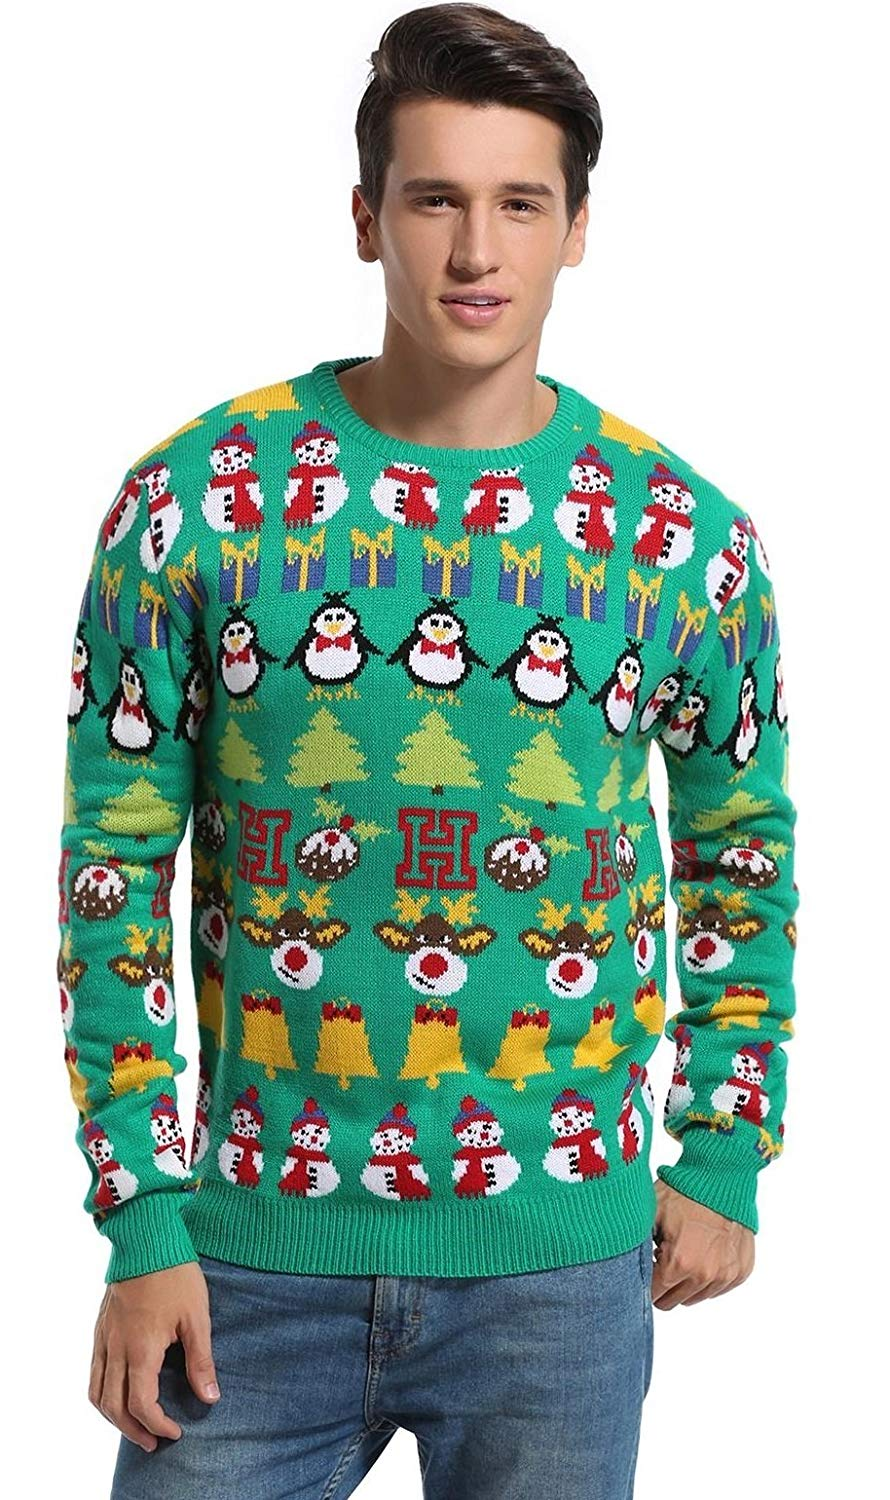 Christmas Decorations Stripes Sweater Cute Ugly Pullover